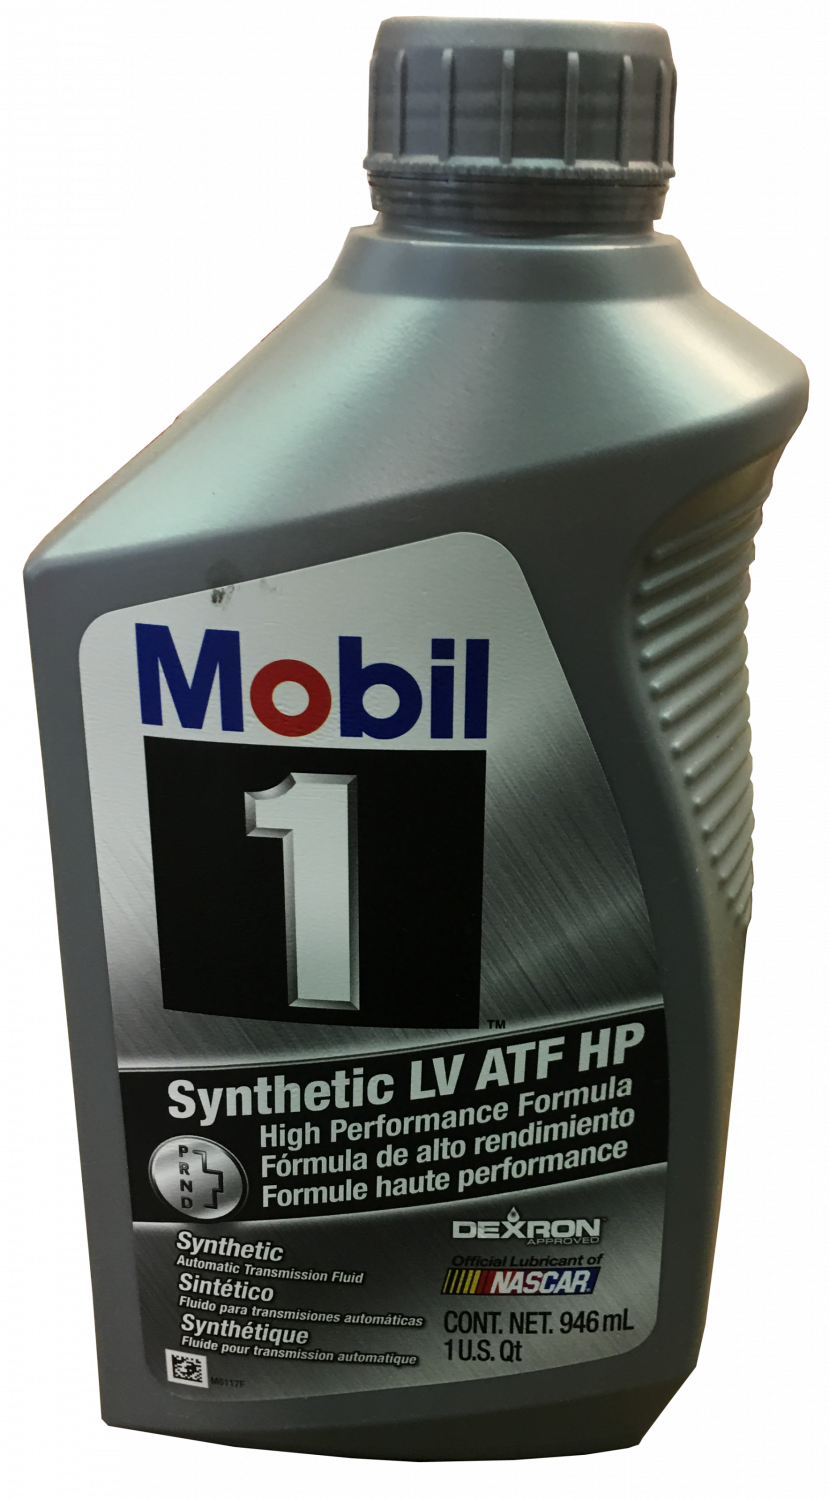 19353429 Mobil 1 Synthetic Lv Atf Hp Transmission Fluid